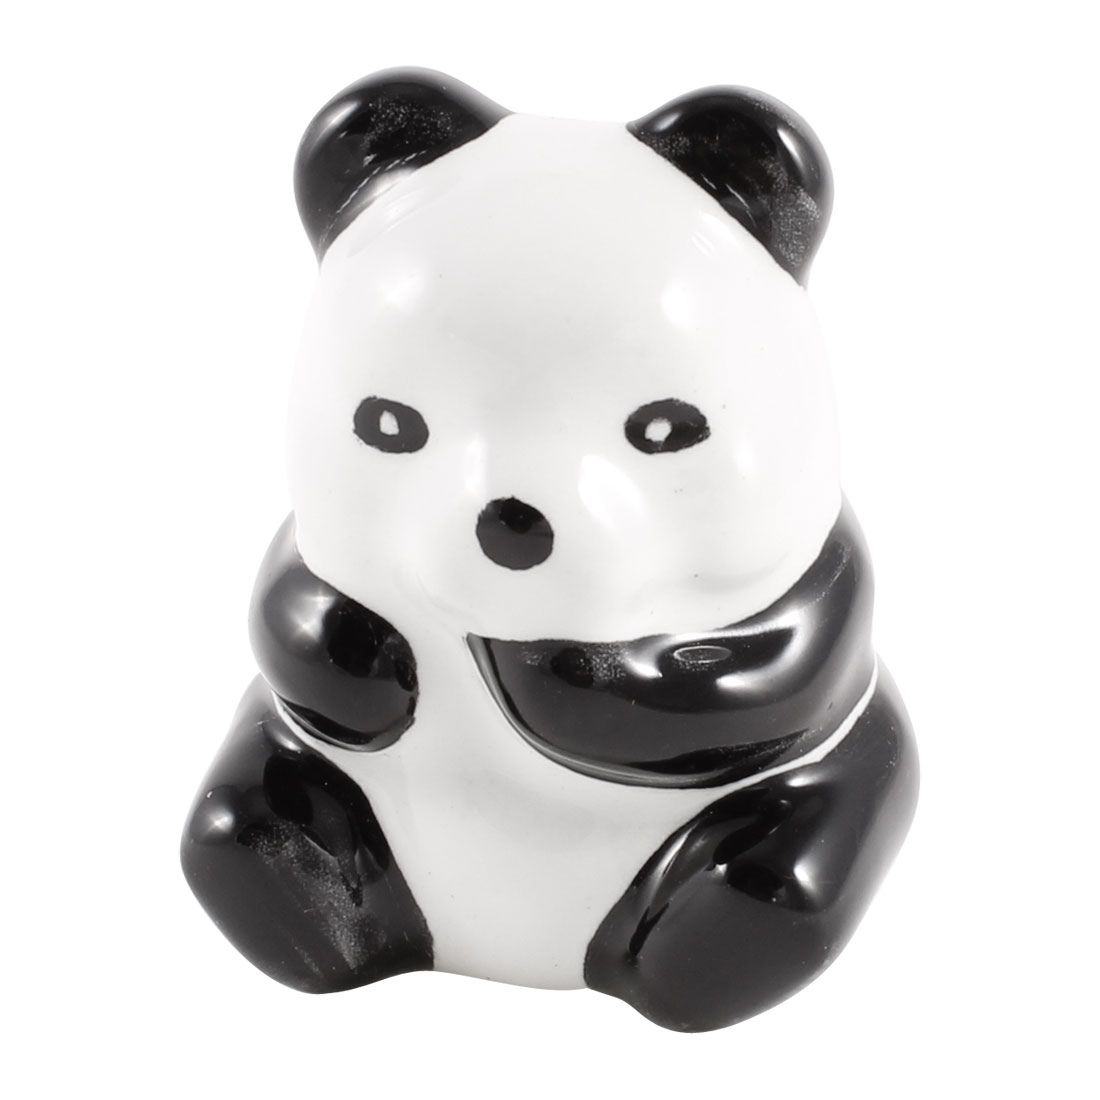 Home Black White Panda Designed Ceramic Drawer Knob Pull Handle Grip 4.2cm Long